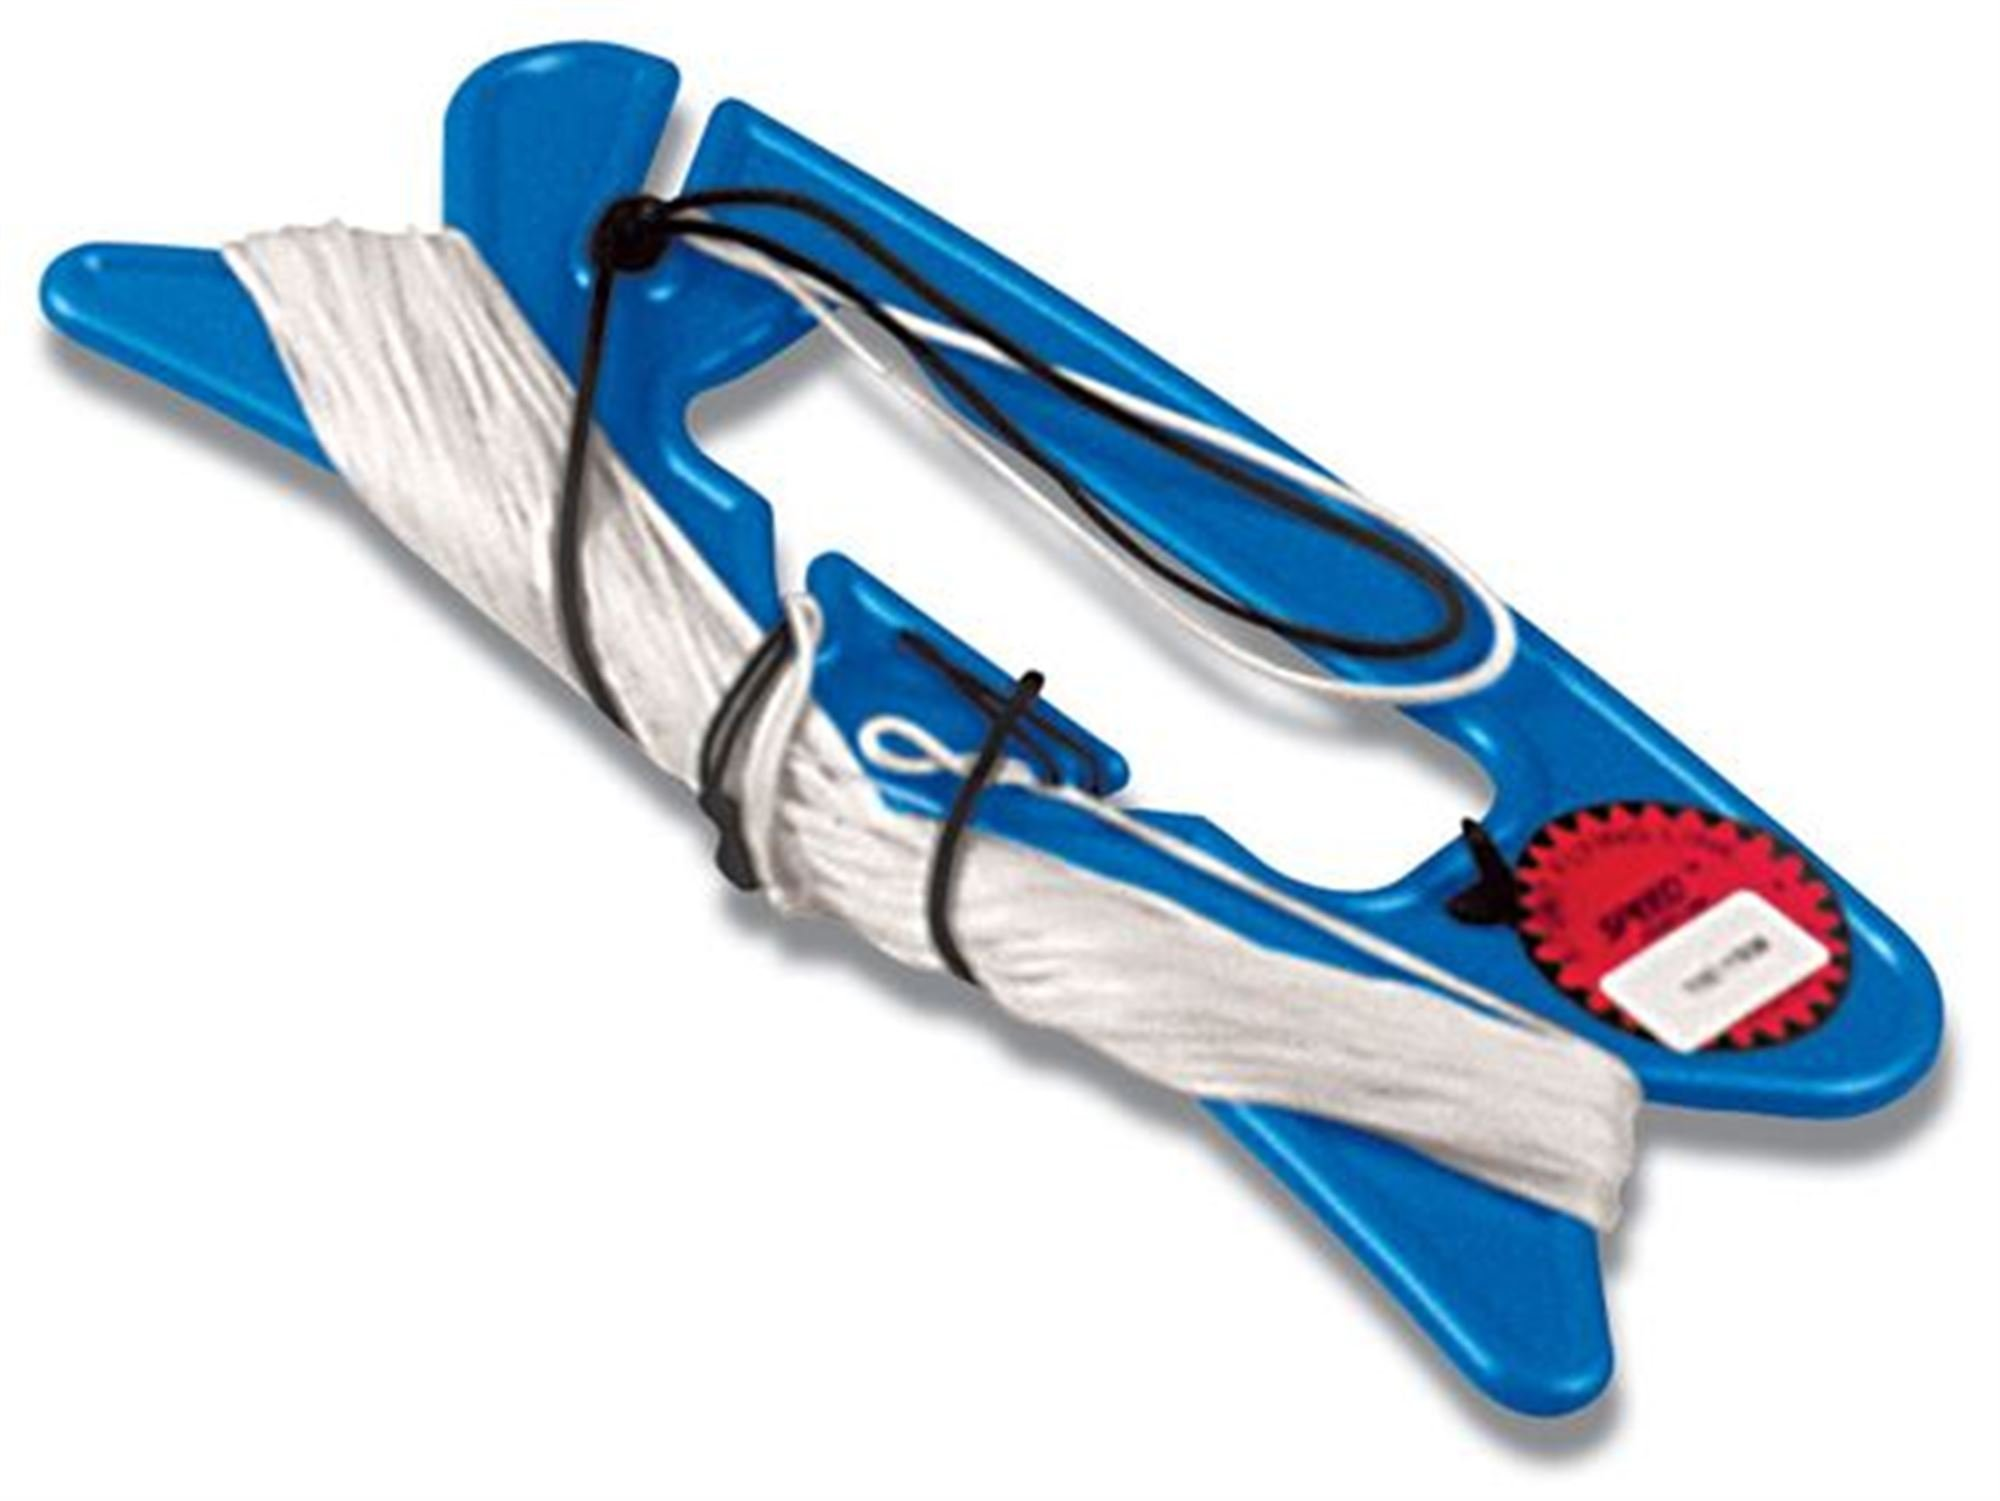 90' 150-lb. Shanti Stunt Kite Spectra Speed Line Set Made in the USA